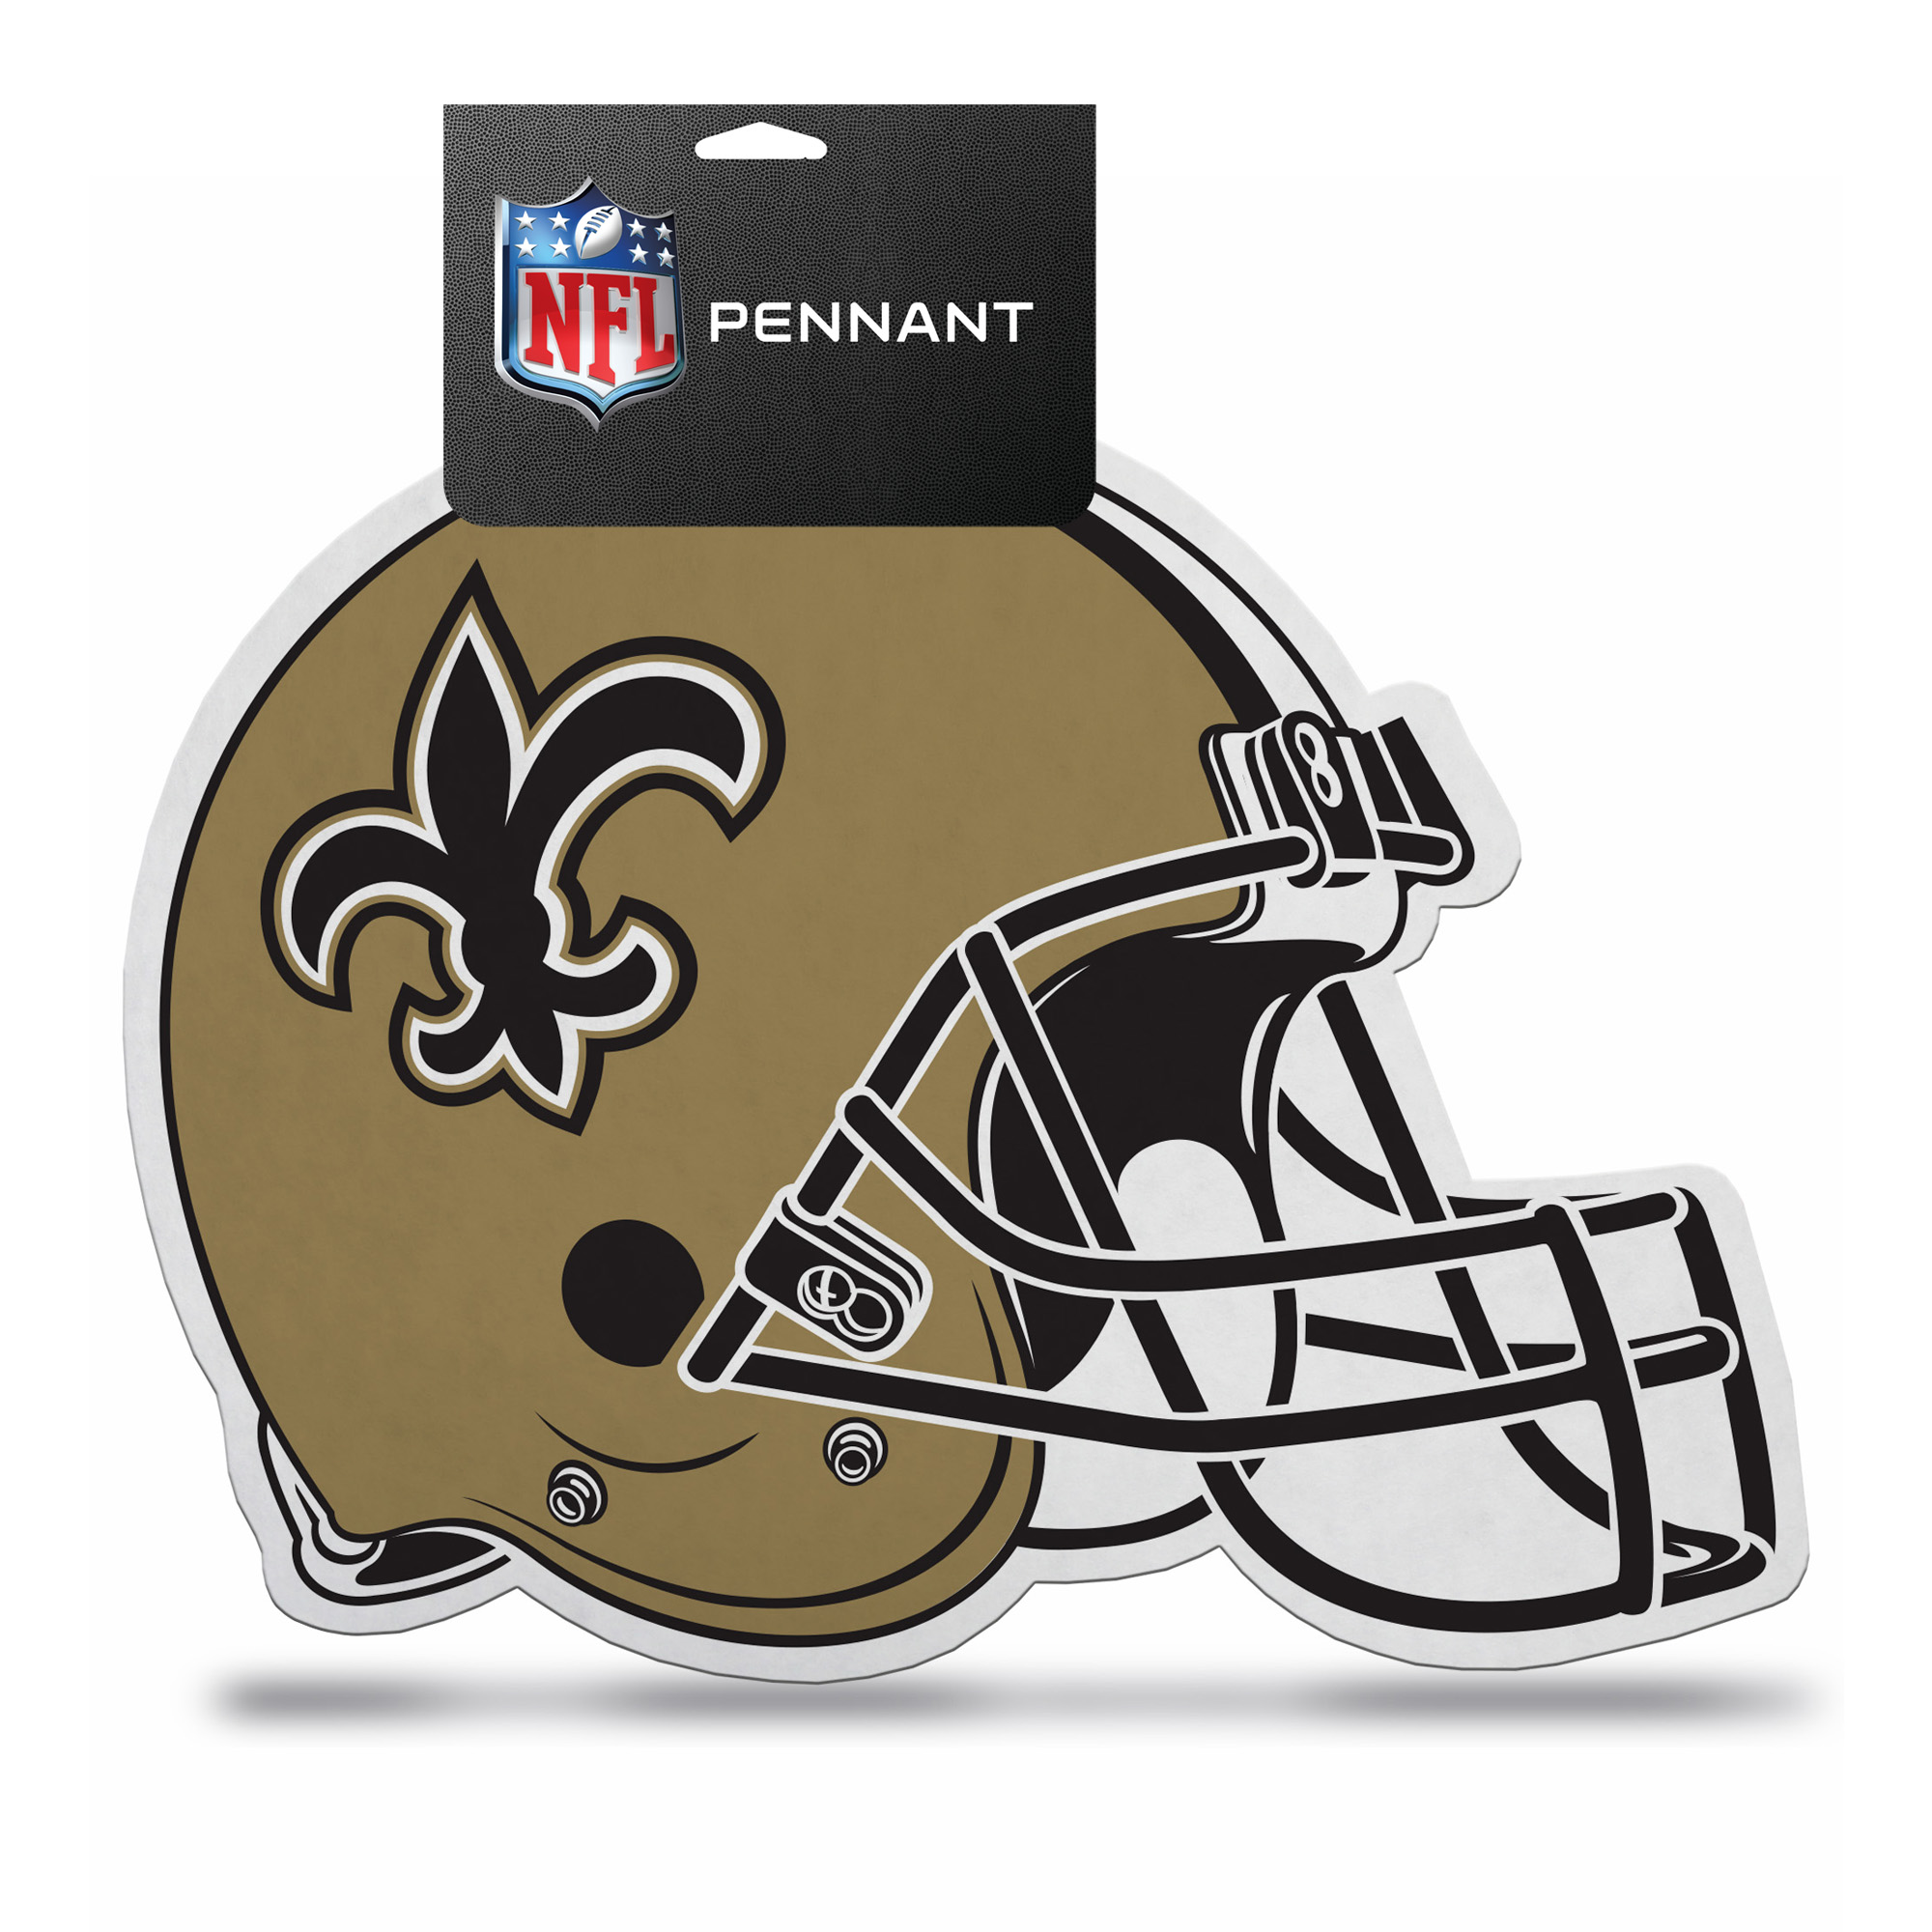 New Orleans Saints Official NFL 15 inch x 12 inch  Helmet Die Cut Pennant by Rico Industries